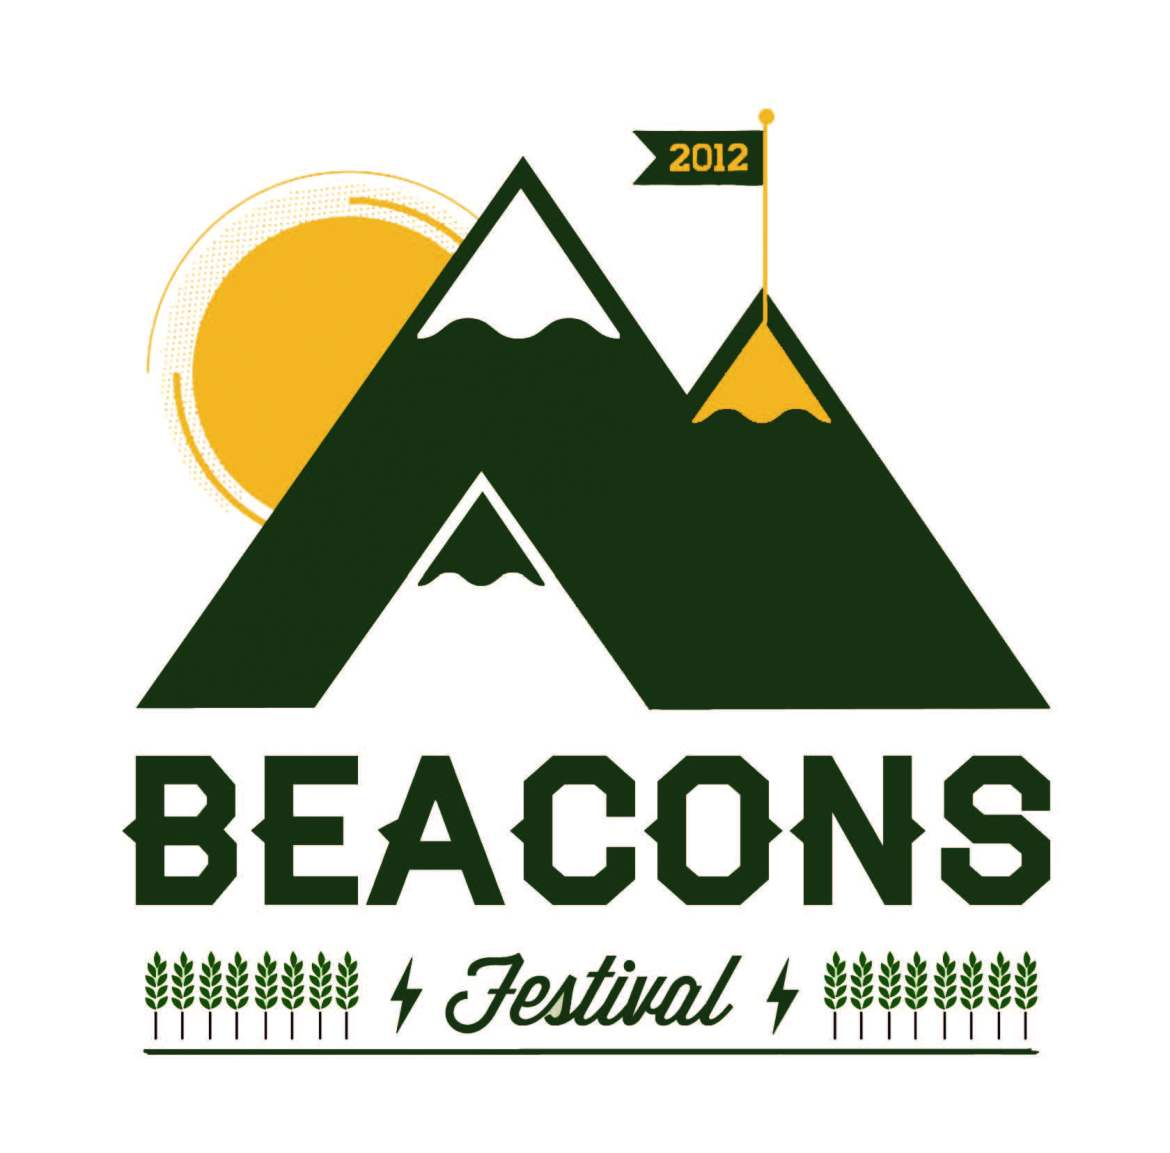 Beacons Festival adds 30 more acts to complete this years line-up